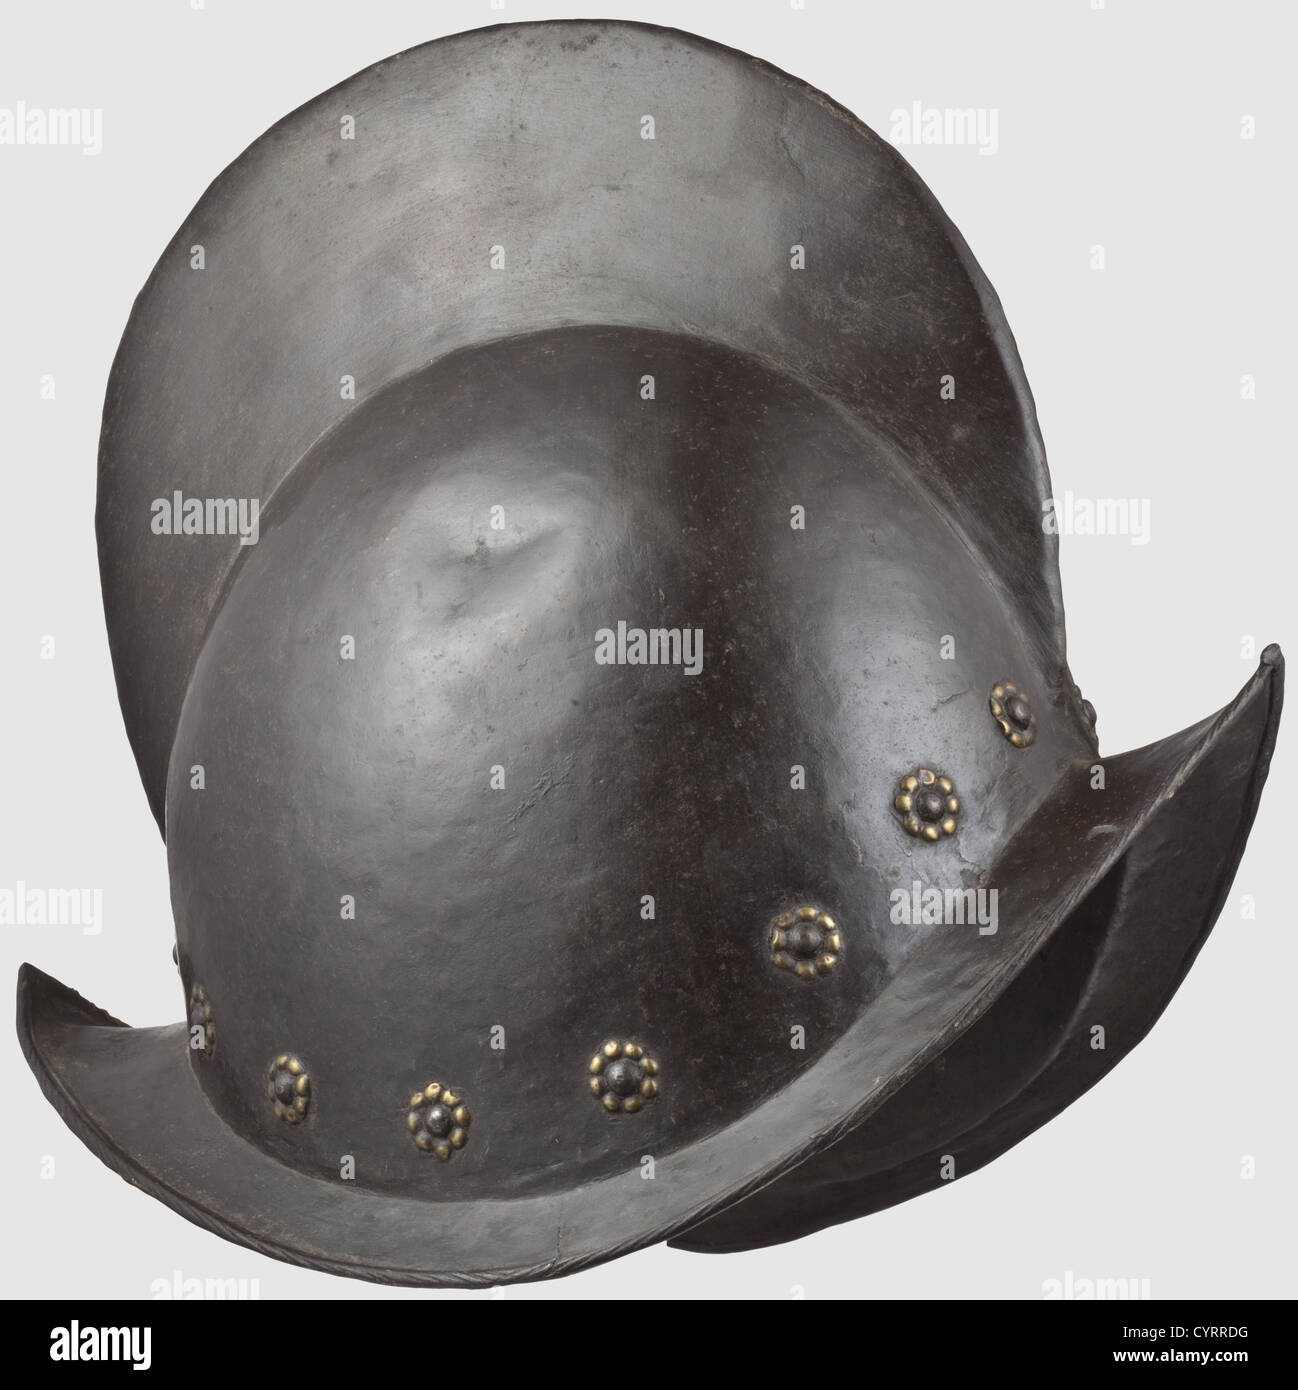 A blackened Nuremberg morion, circa 1600 One-piece skull with the original blackening, with visible hammer pattern - Stock Image